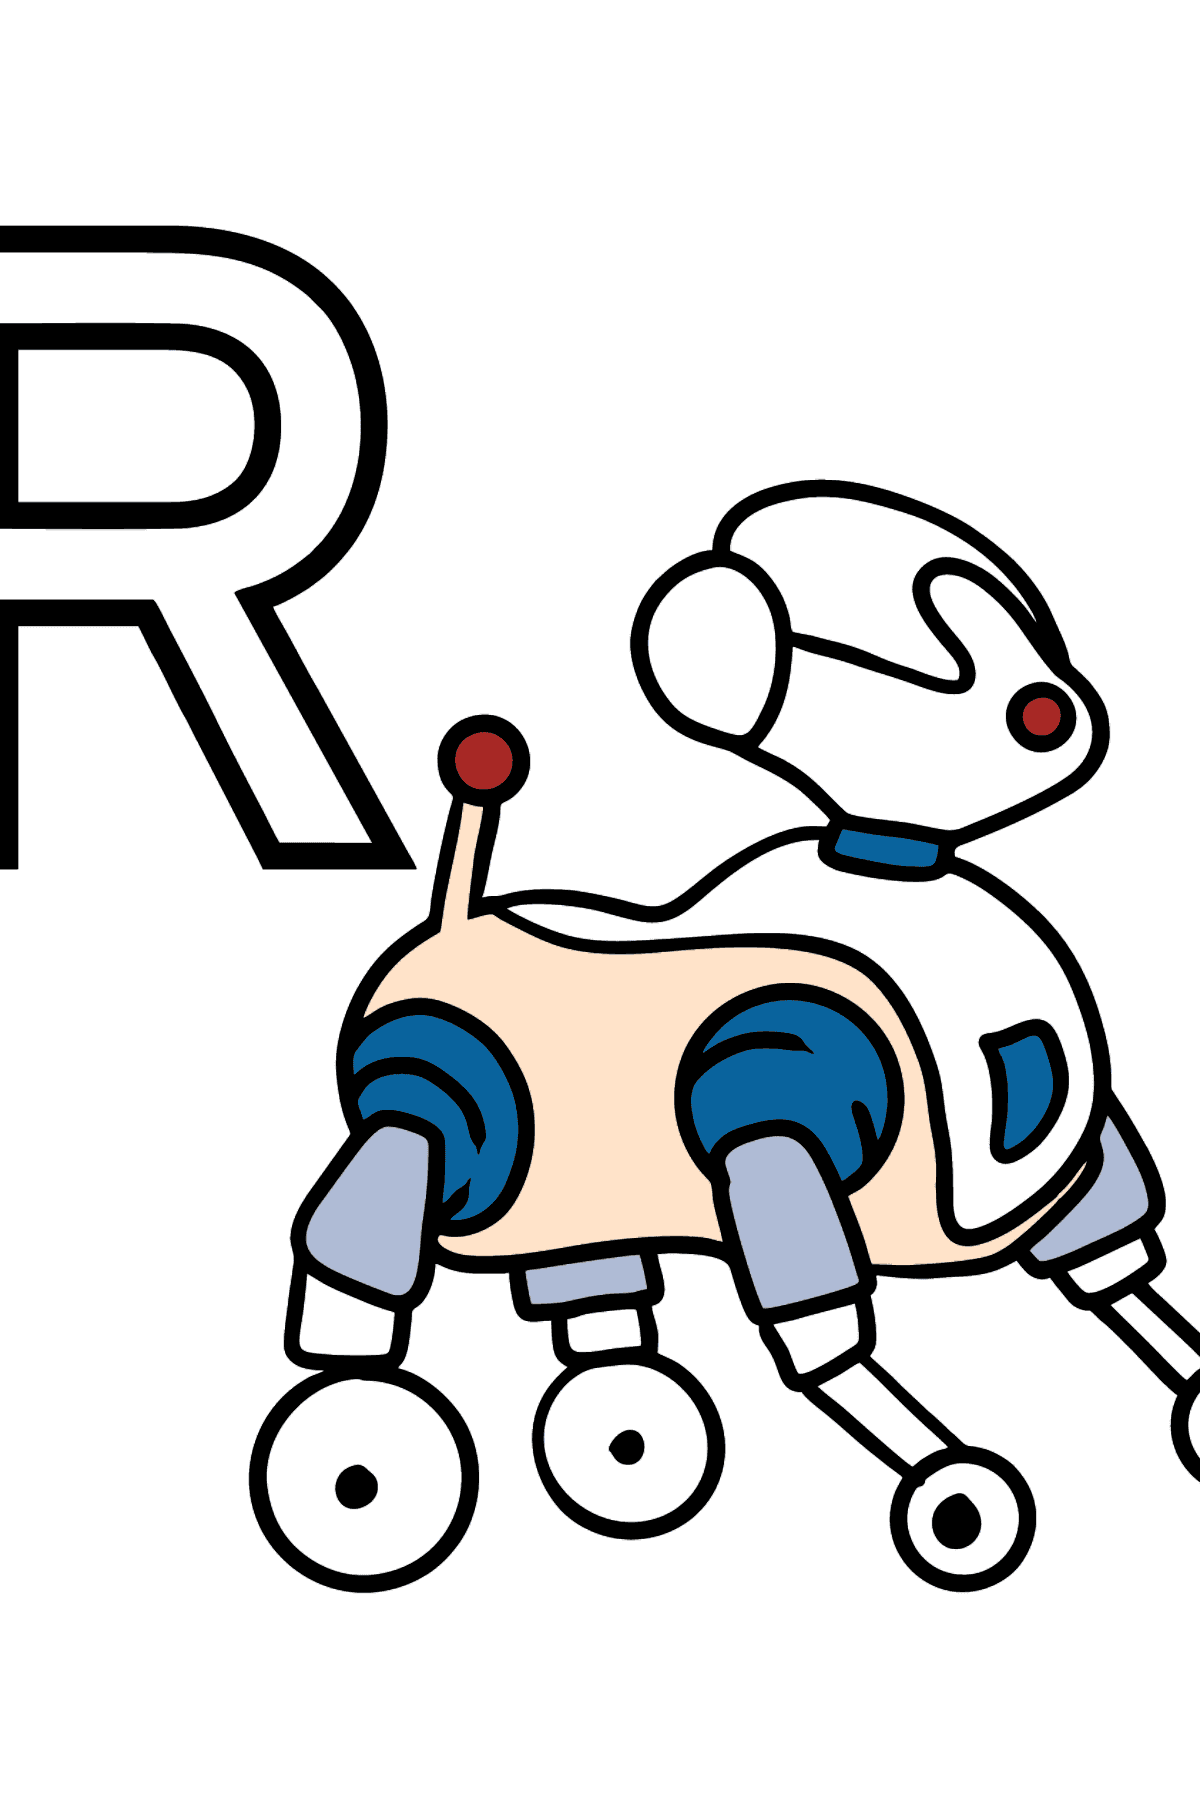 English Letter R coloring pages - ROBOT - Coloring Pages for Kids